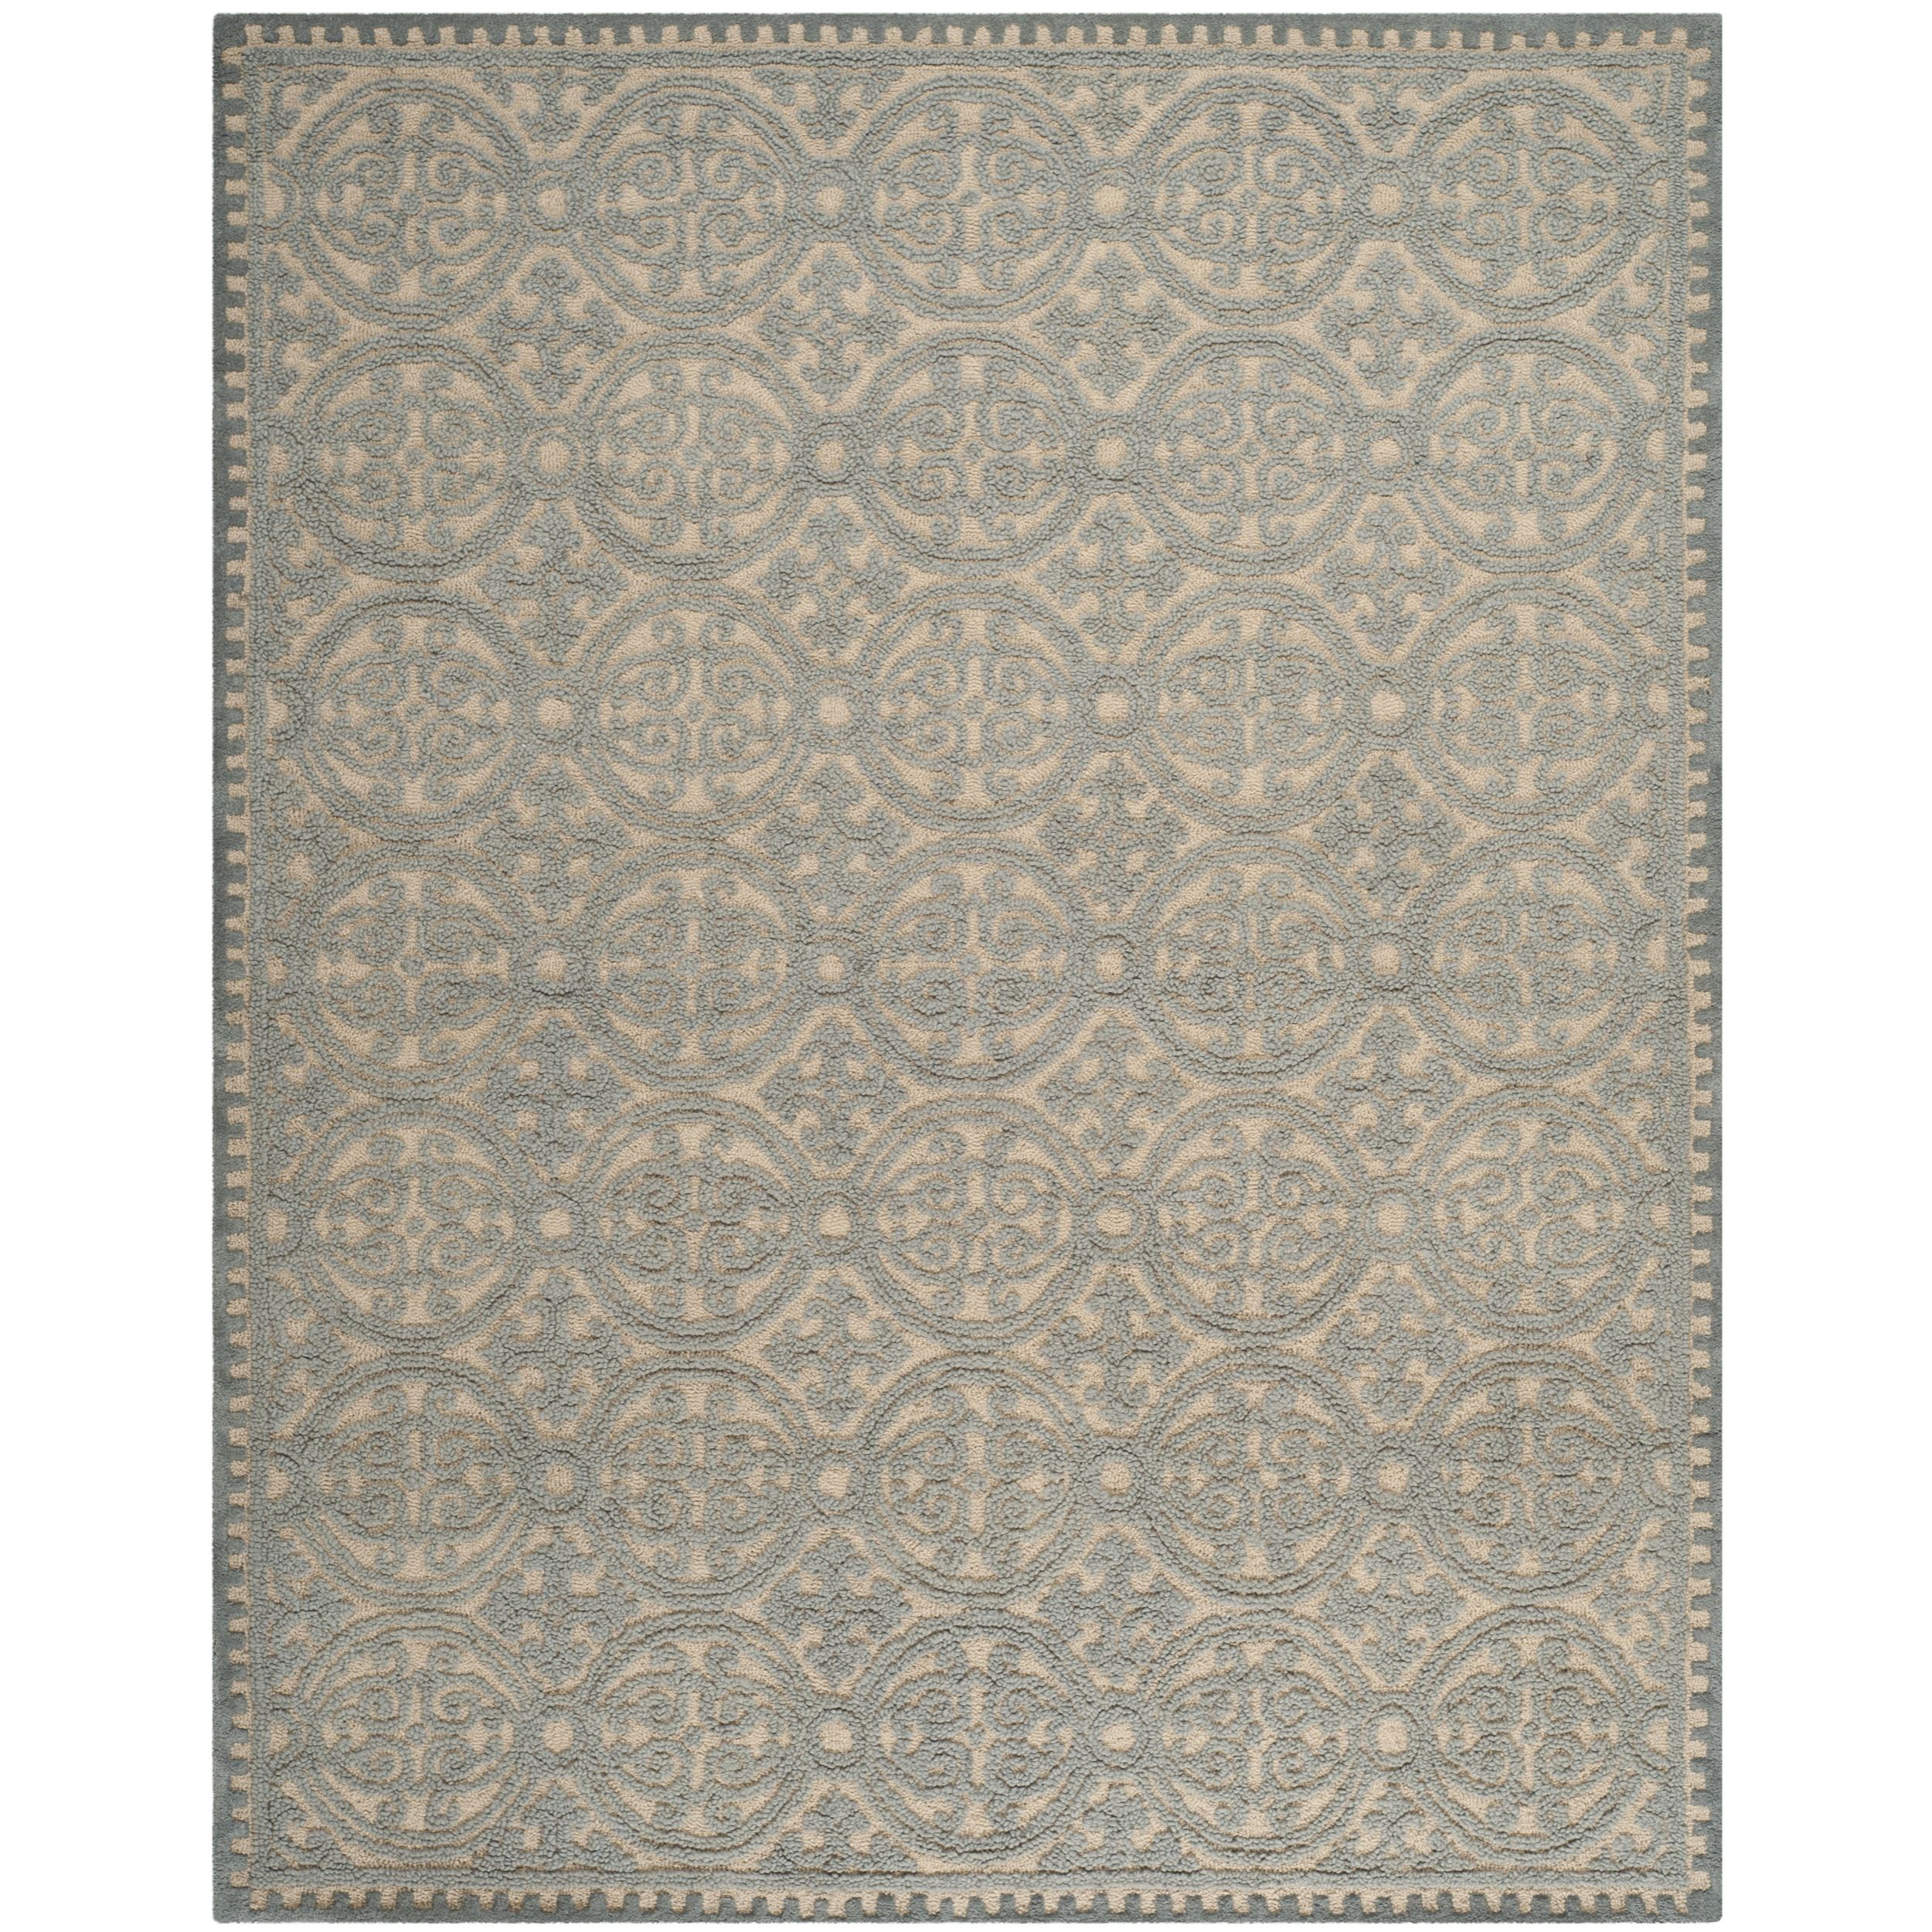 For living room safavieh handmade moroccan cambridge dusty blue